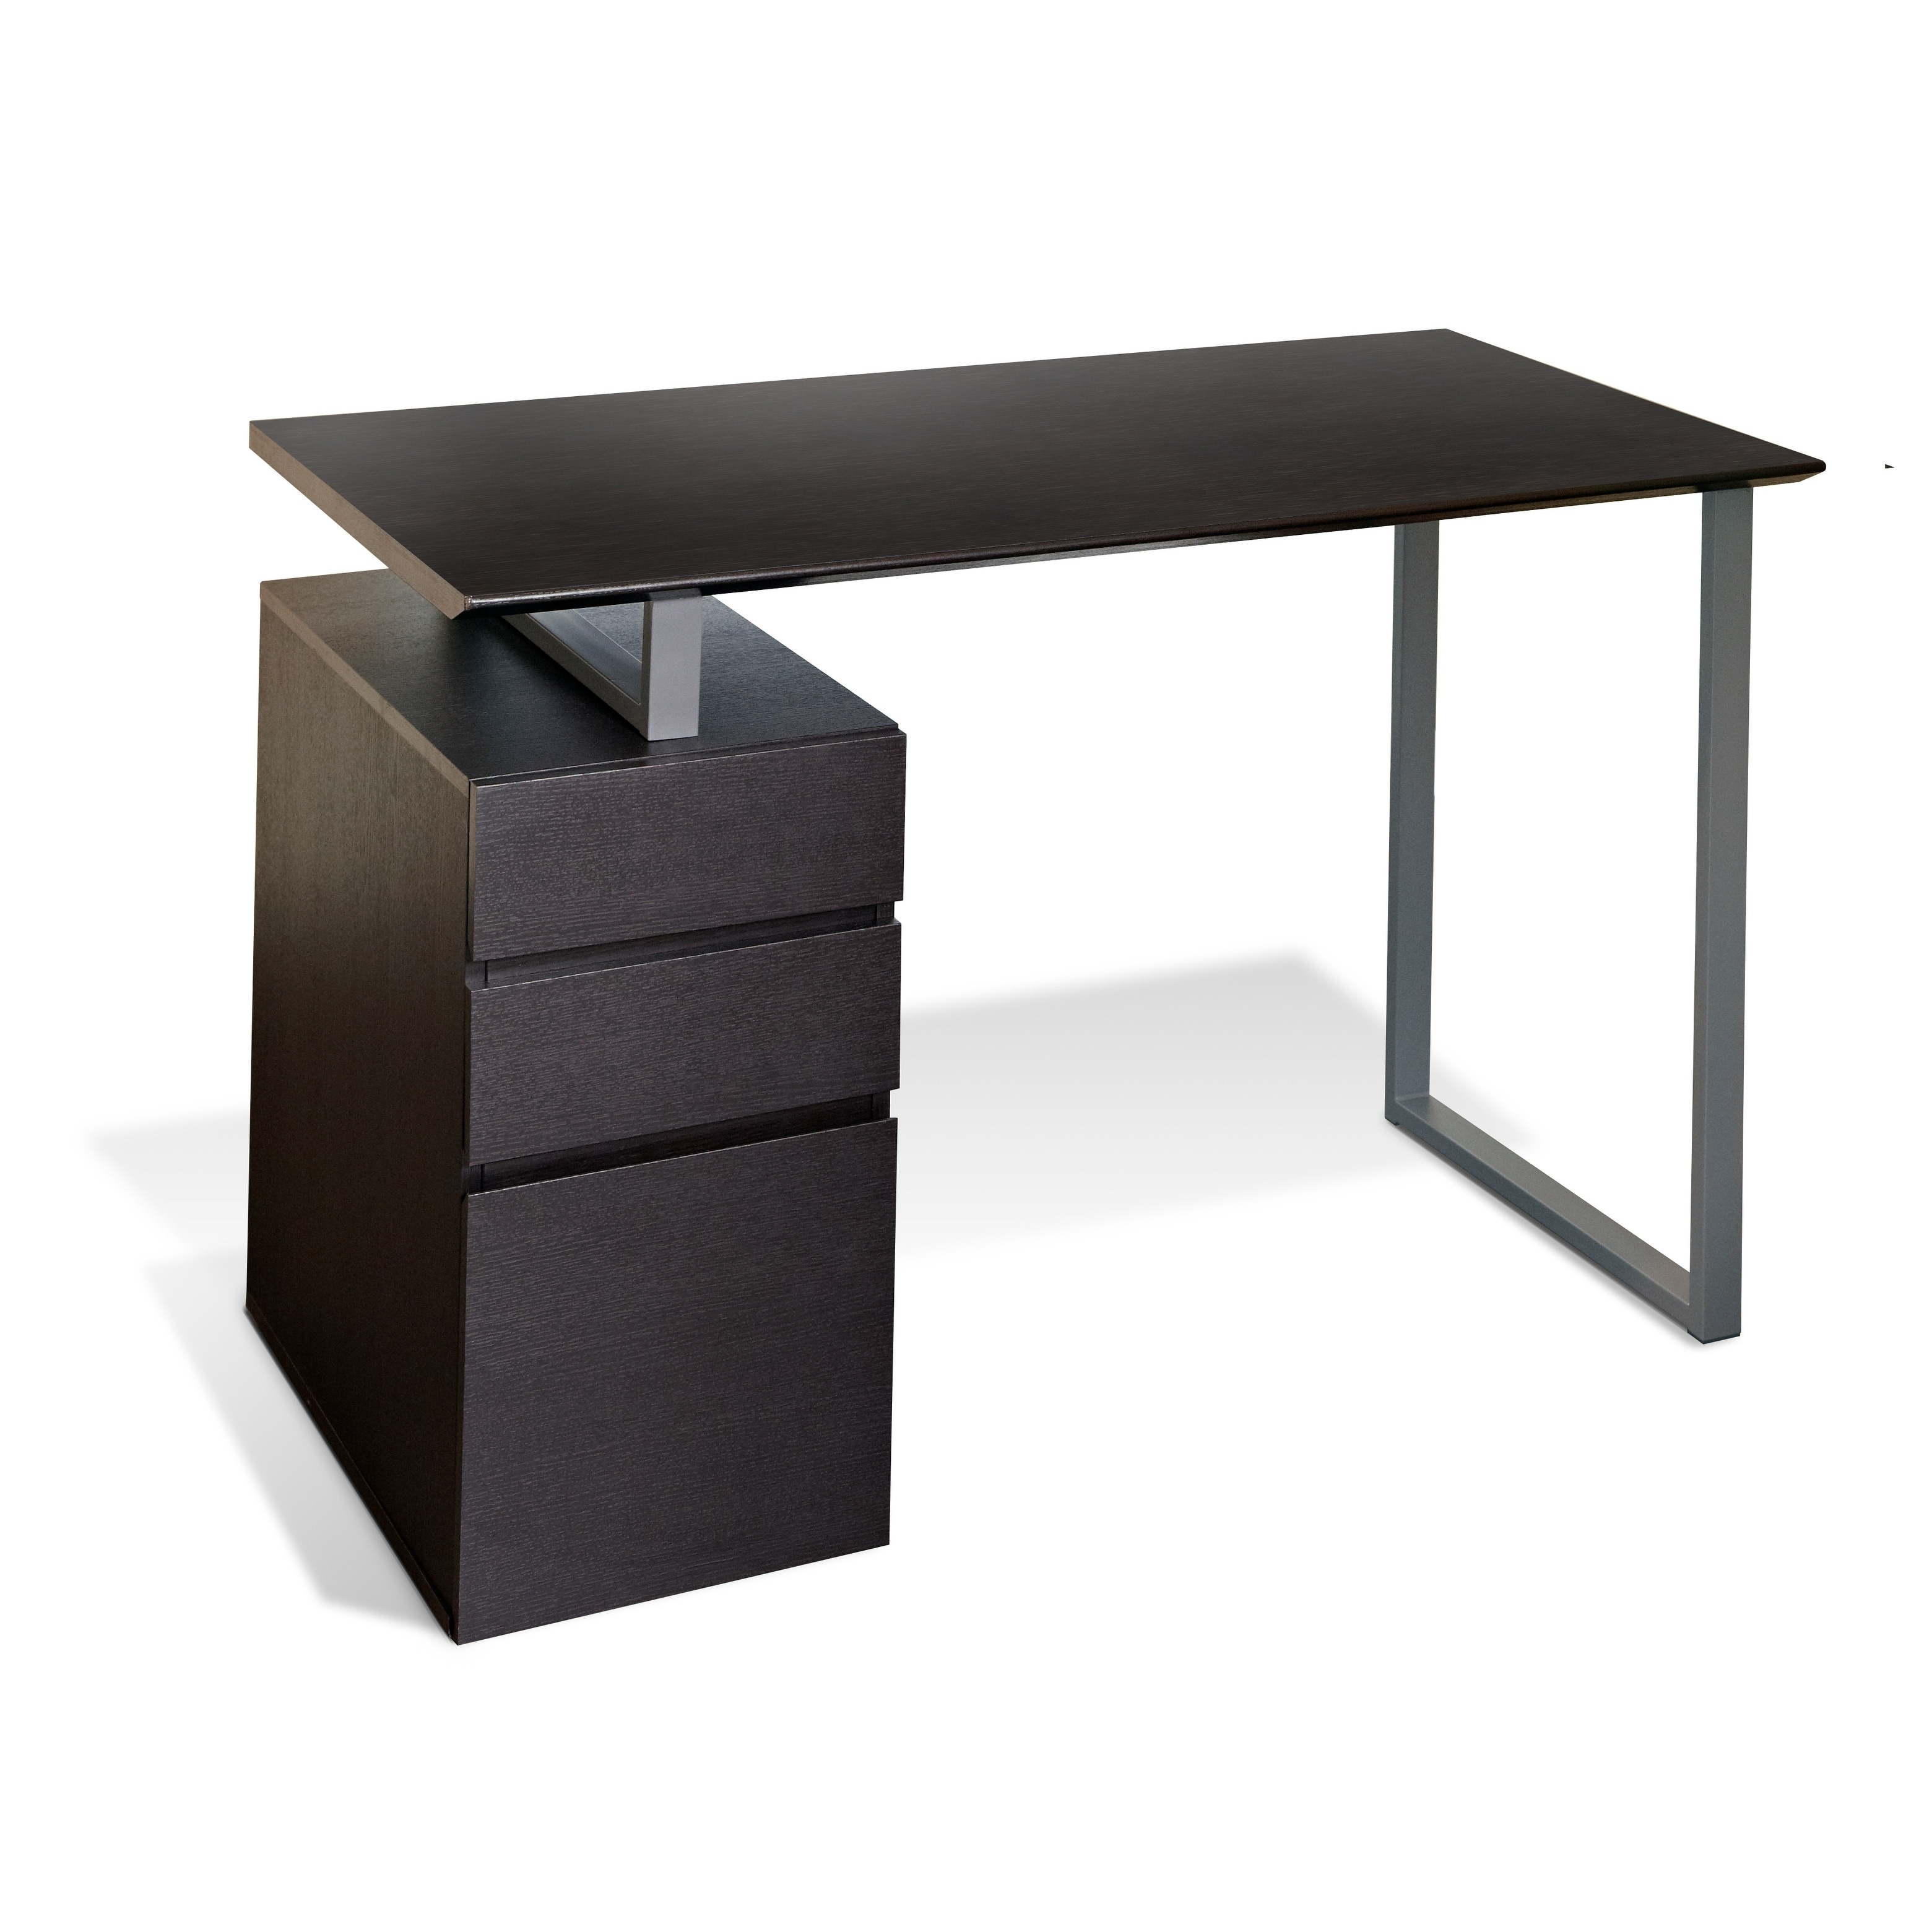 budget desk id low computer cost table tables